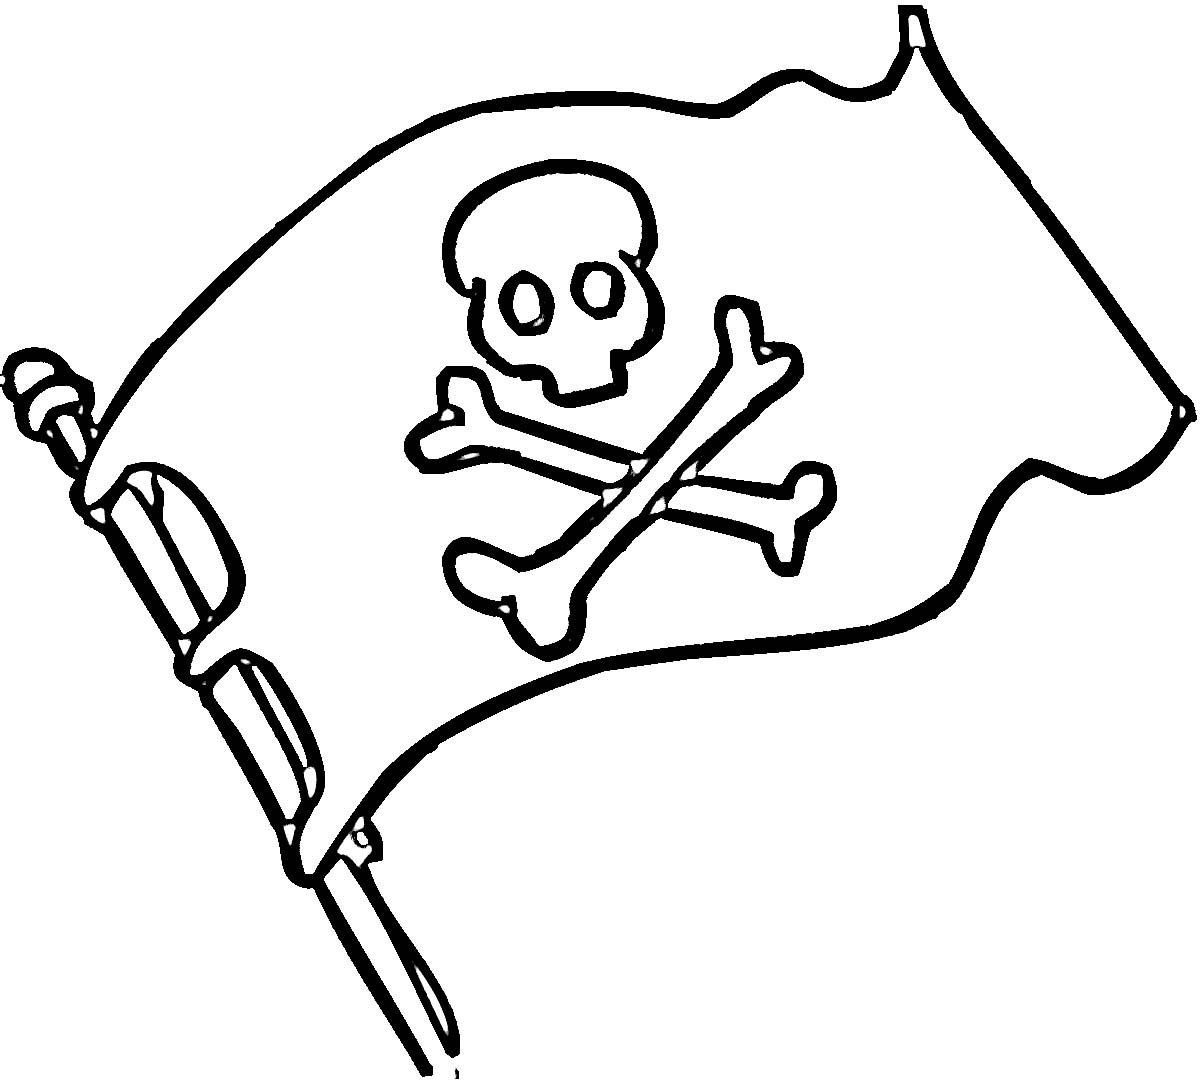 Pirate flag coloring pages – Coloring Pages & Pictures – IMAGIXS …